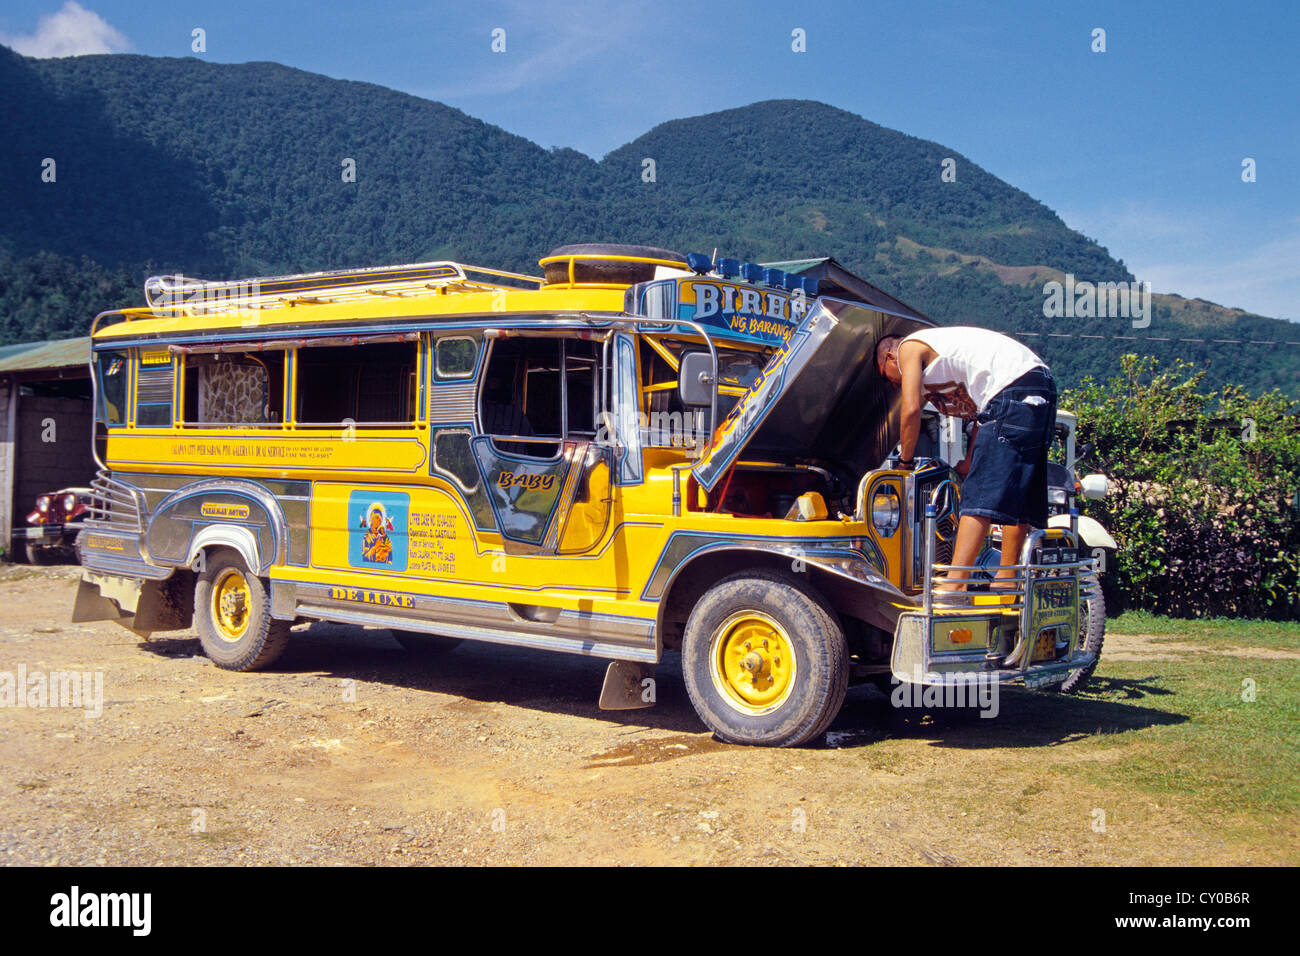 Mini-bus created from a Jeepney, one of the old jeeps left behind by the Americans when they withdrew from the Philippines - Stock Image